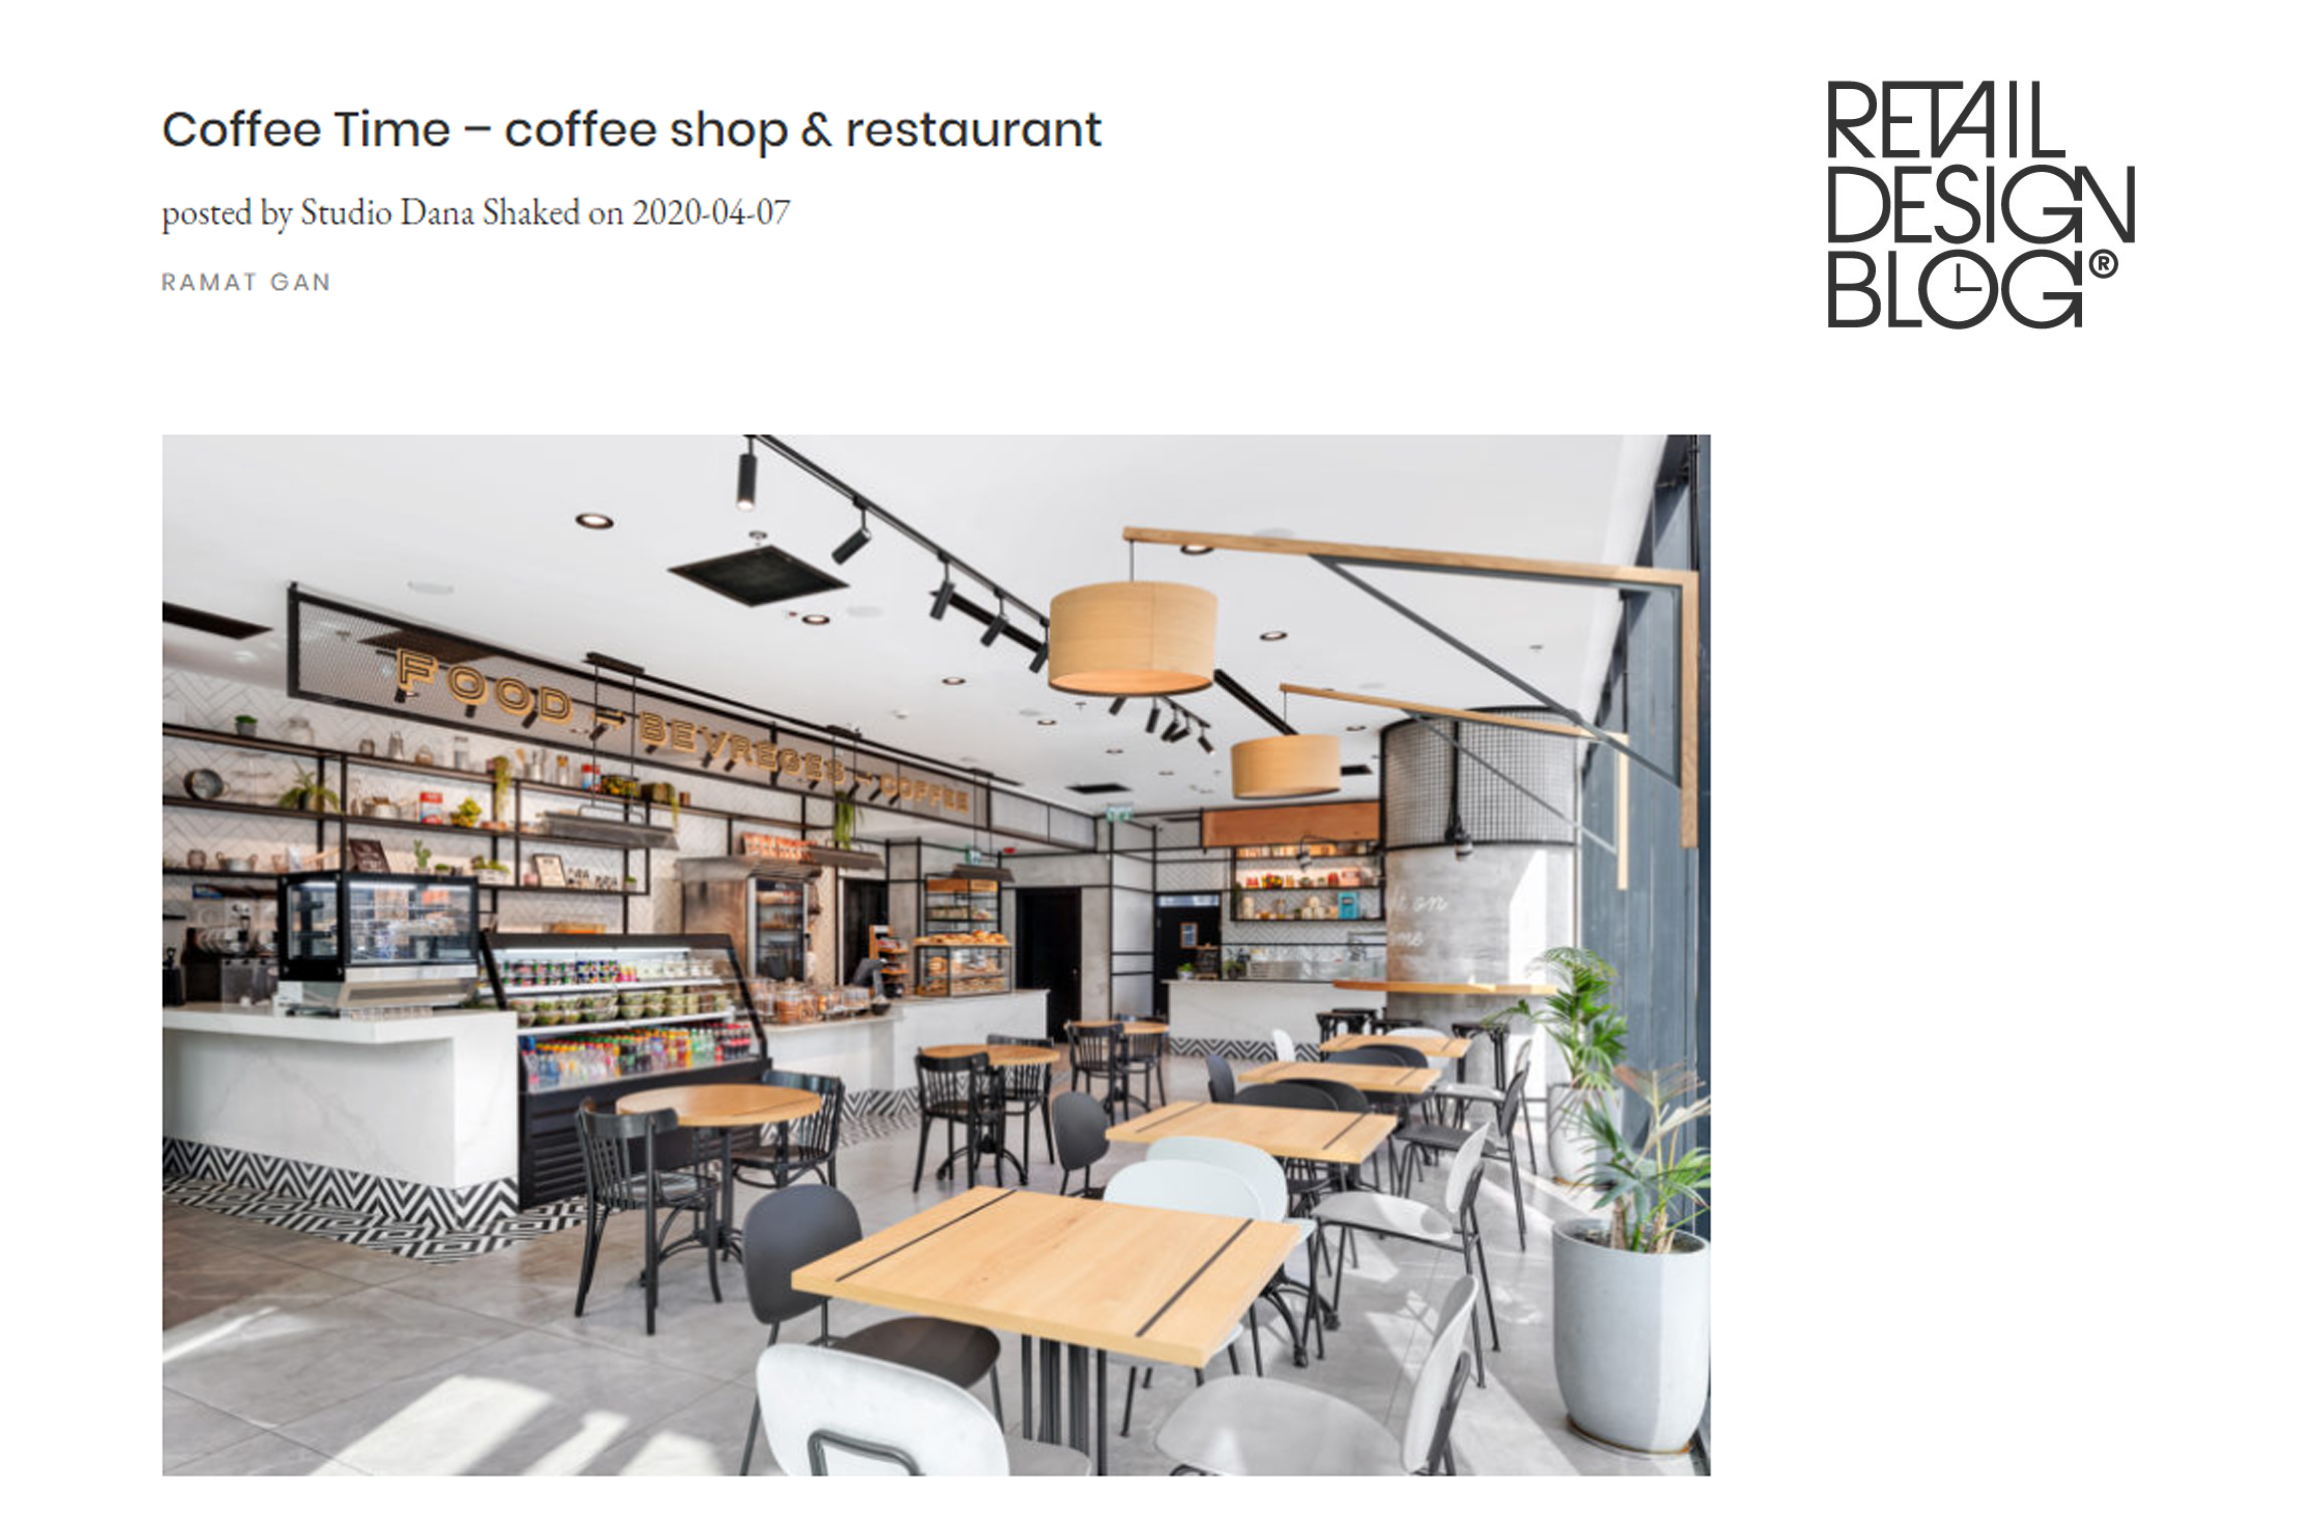 Coffee Time – Retail Design Blog